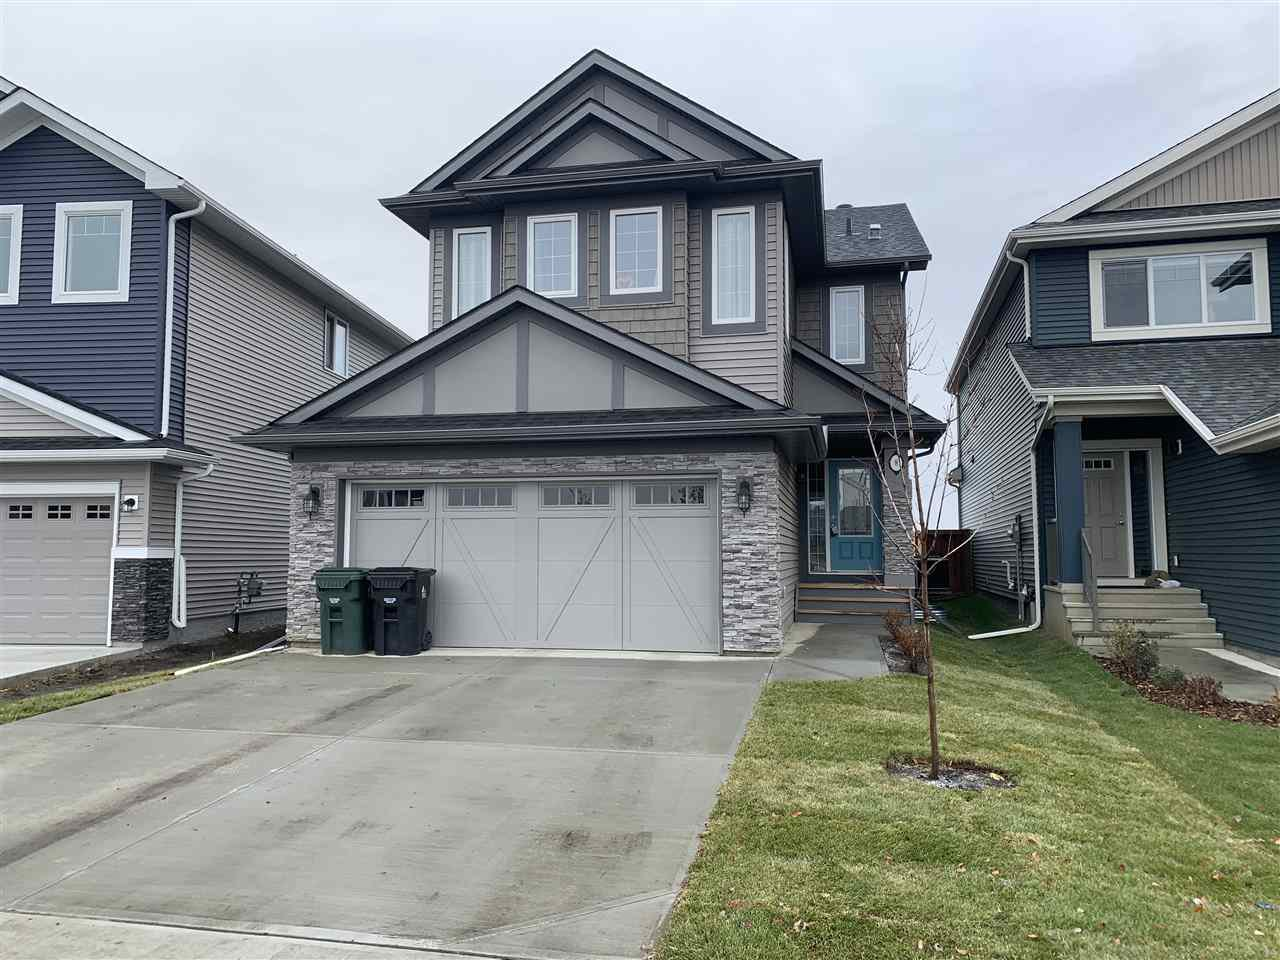 Main Photo: 8 COPPERHAVEN Drive: Spruce Grove House for sale : MLS®# E4174014